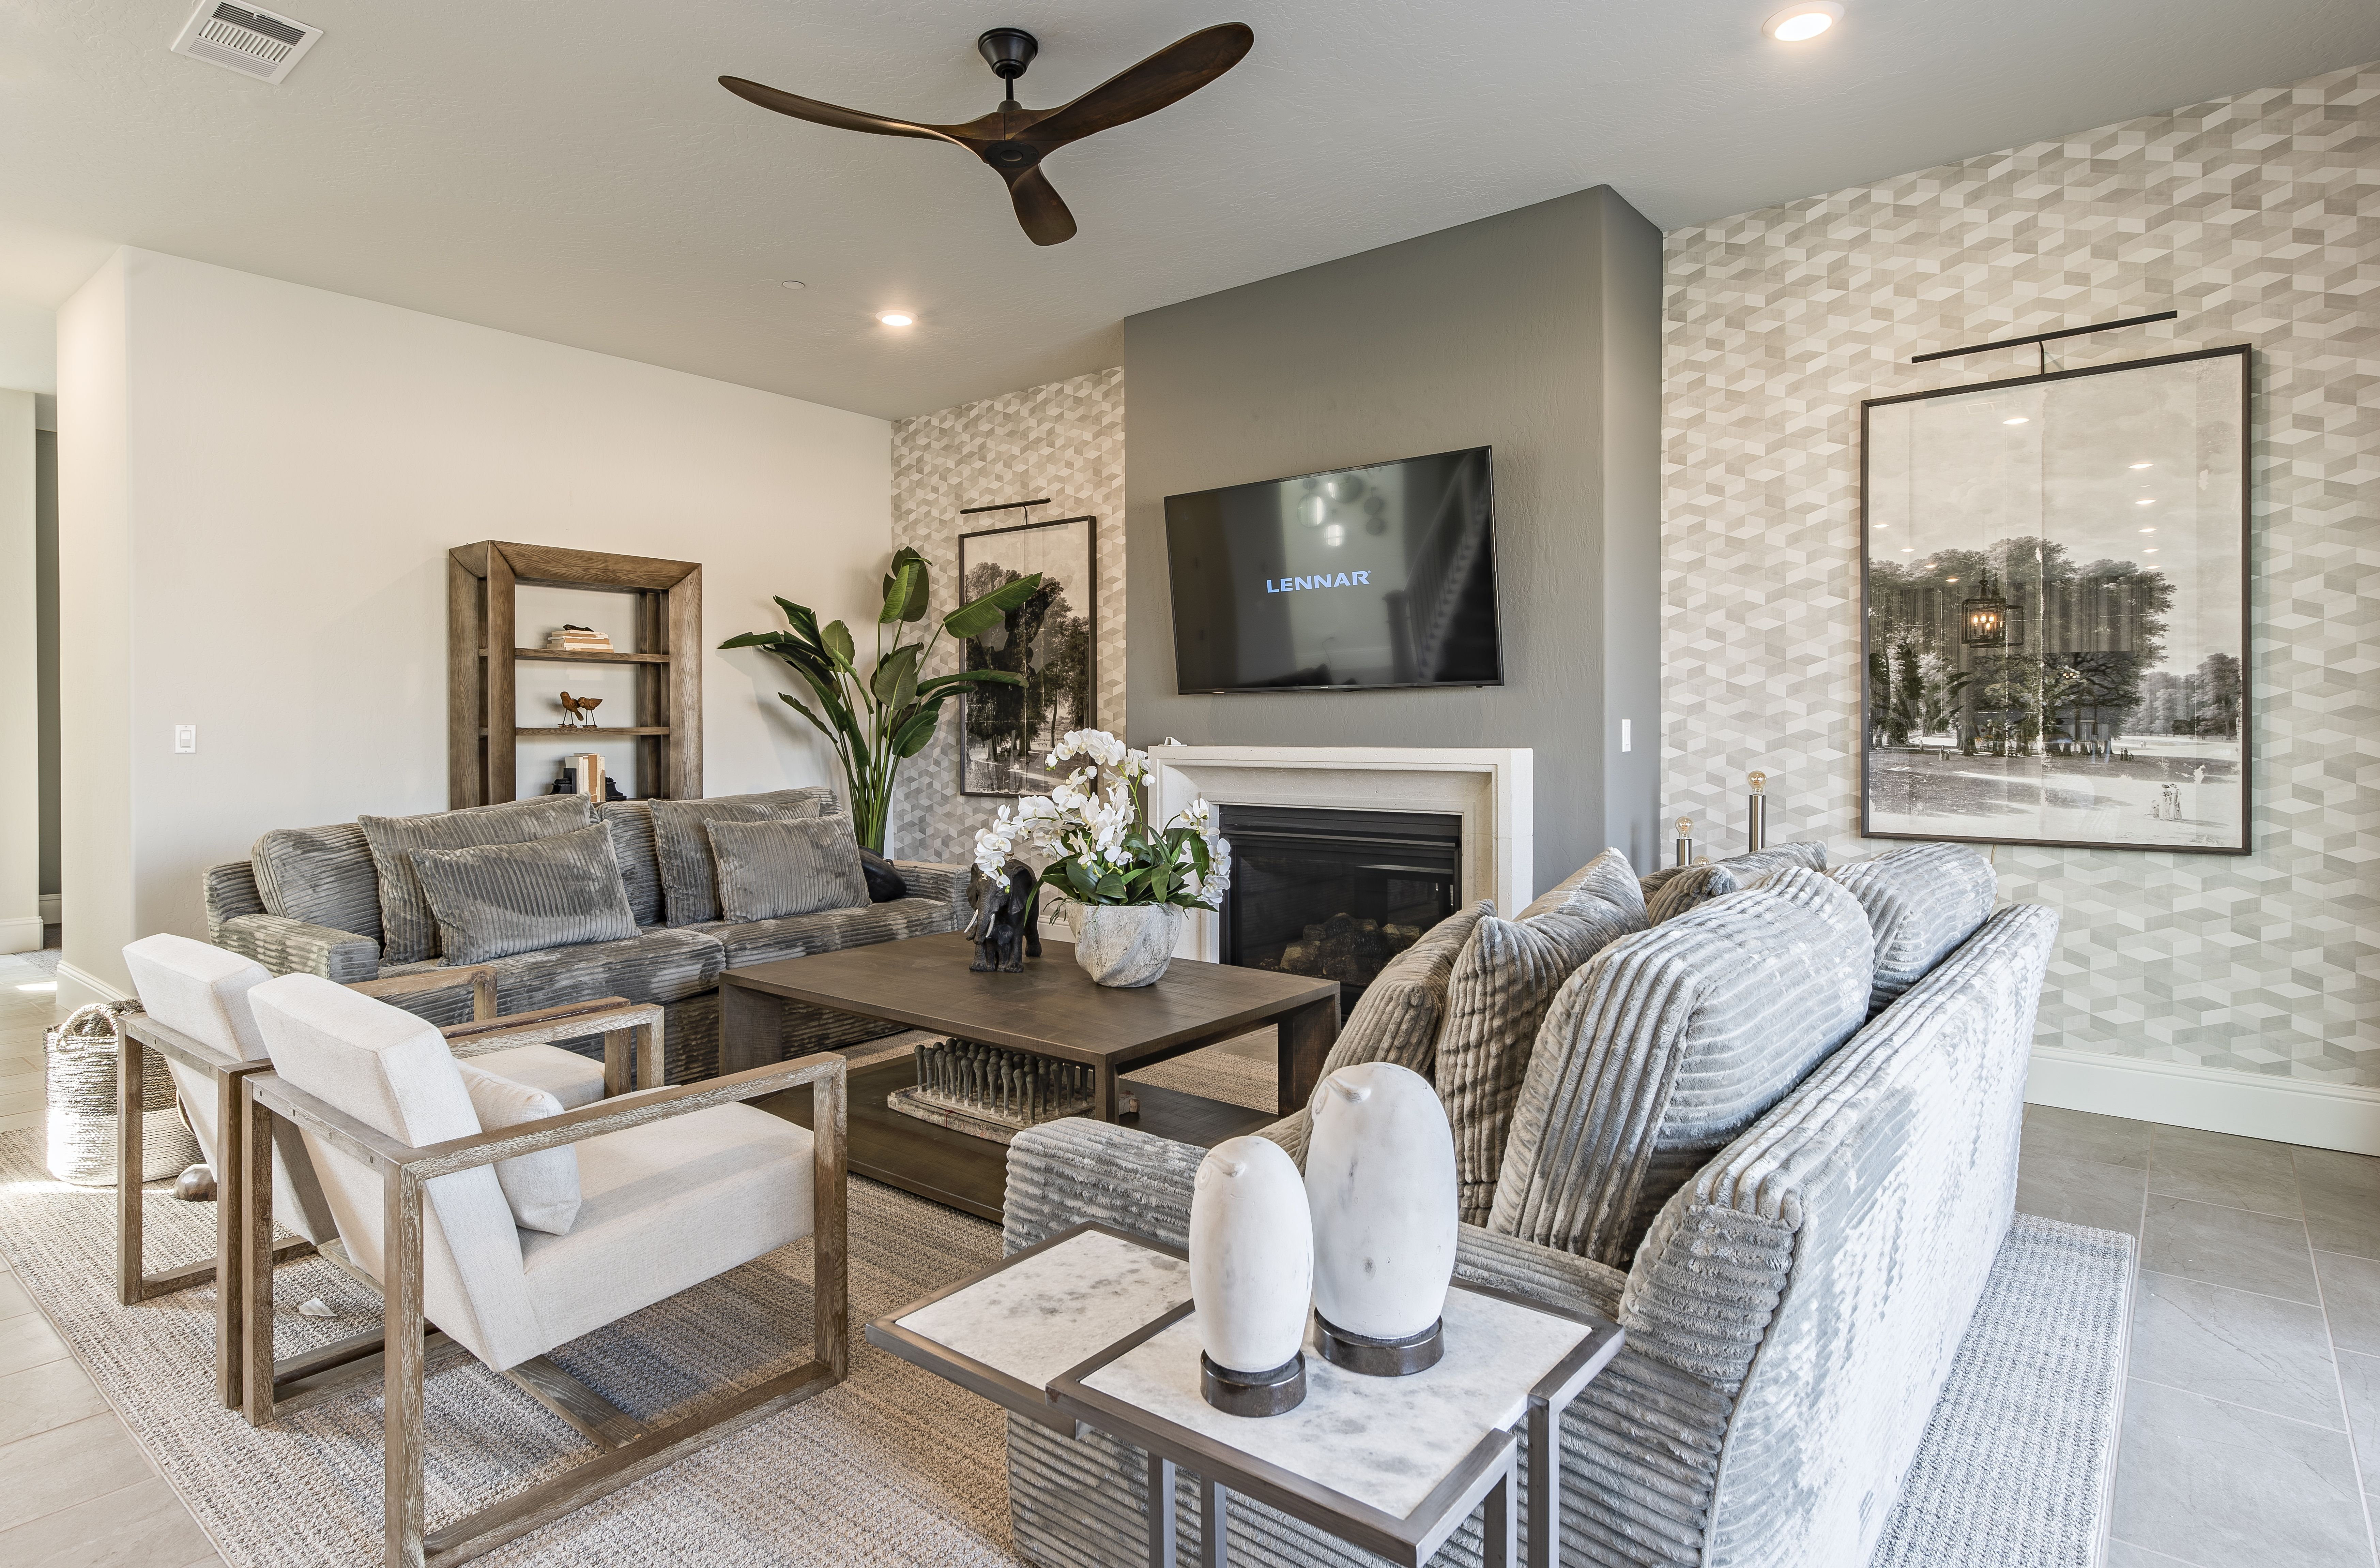 Restoration Hardware Inspired Great Room Decor Grey Tone Color Scheme And Wood Accents Room Design Formal Living Rooms New House Plans New Homes